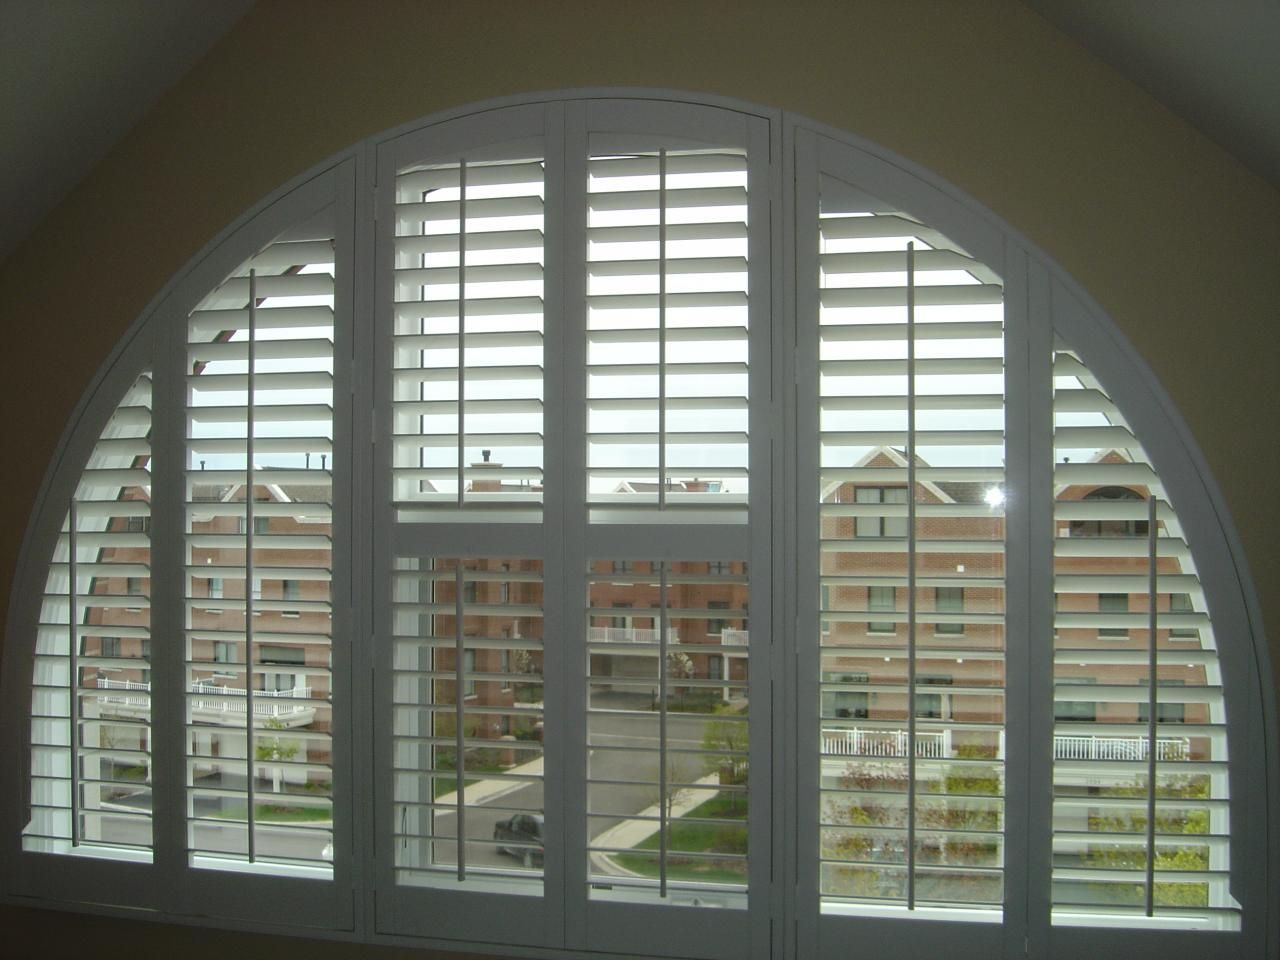 This Arched Window Is Adorned With White Plantation Shutters It Is A Unique Window Treatment In